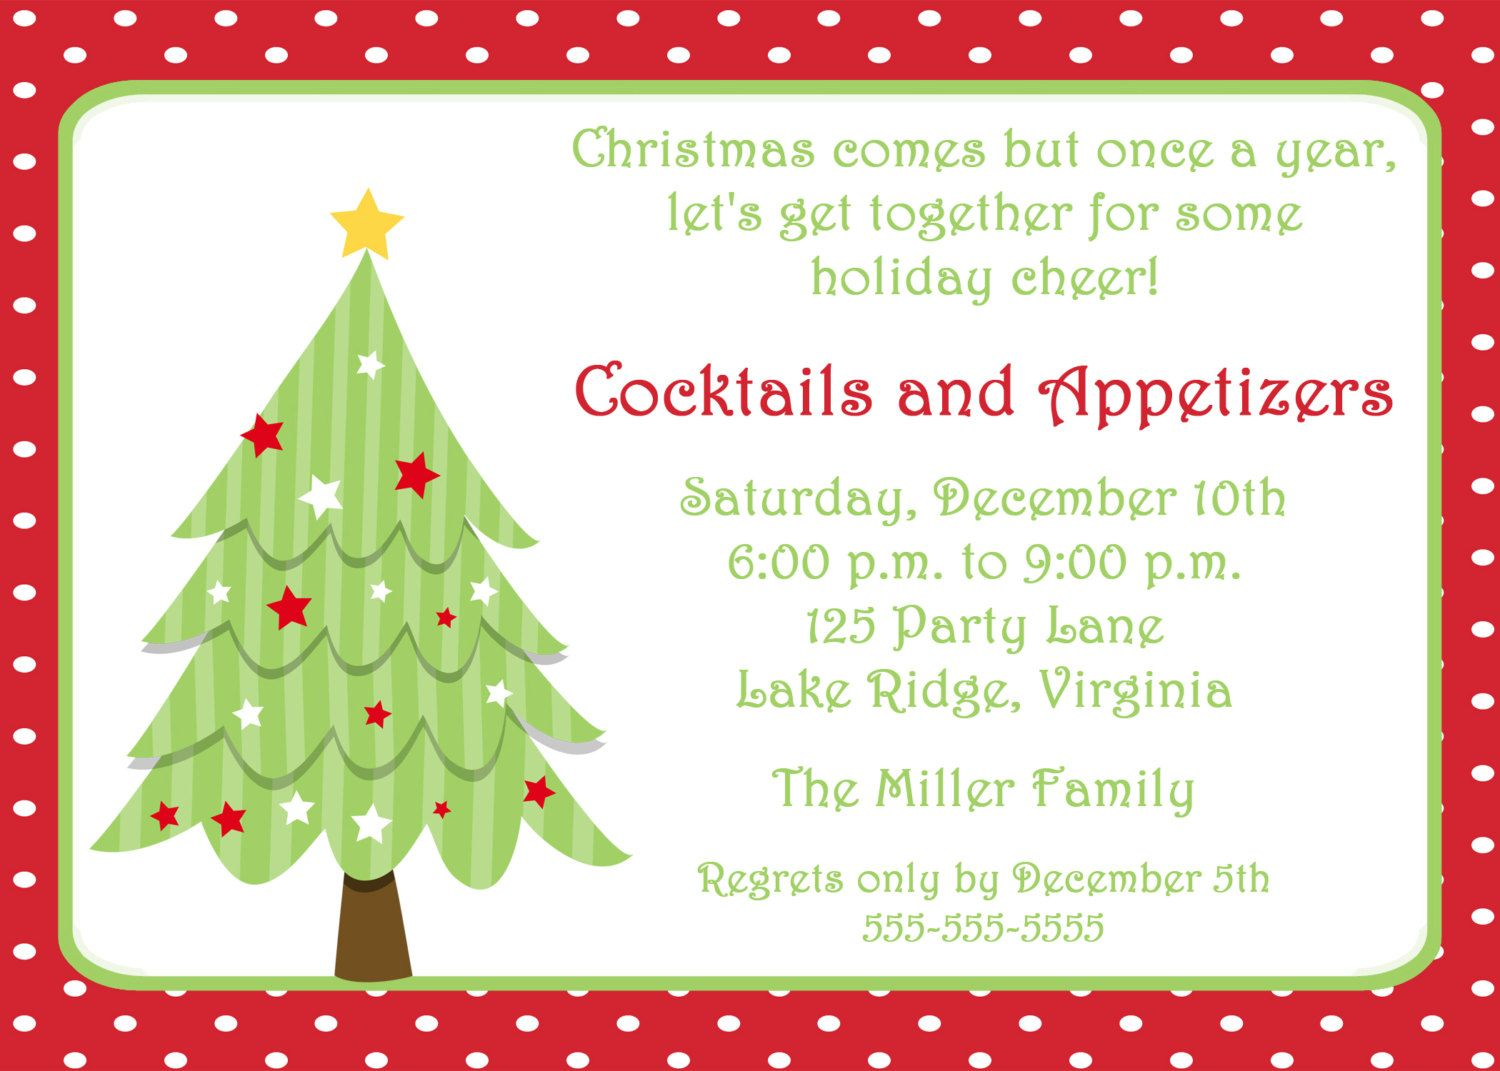 free invitations templates free – Free Christmas Party Templates Invitations